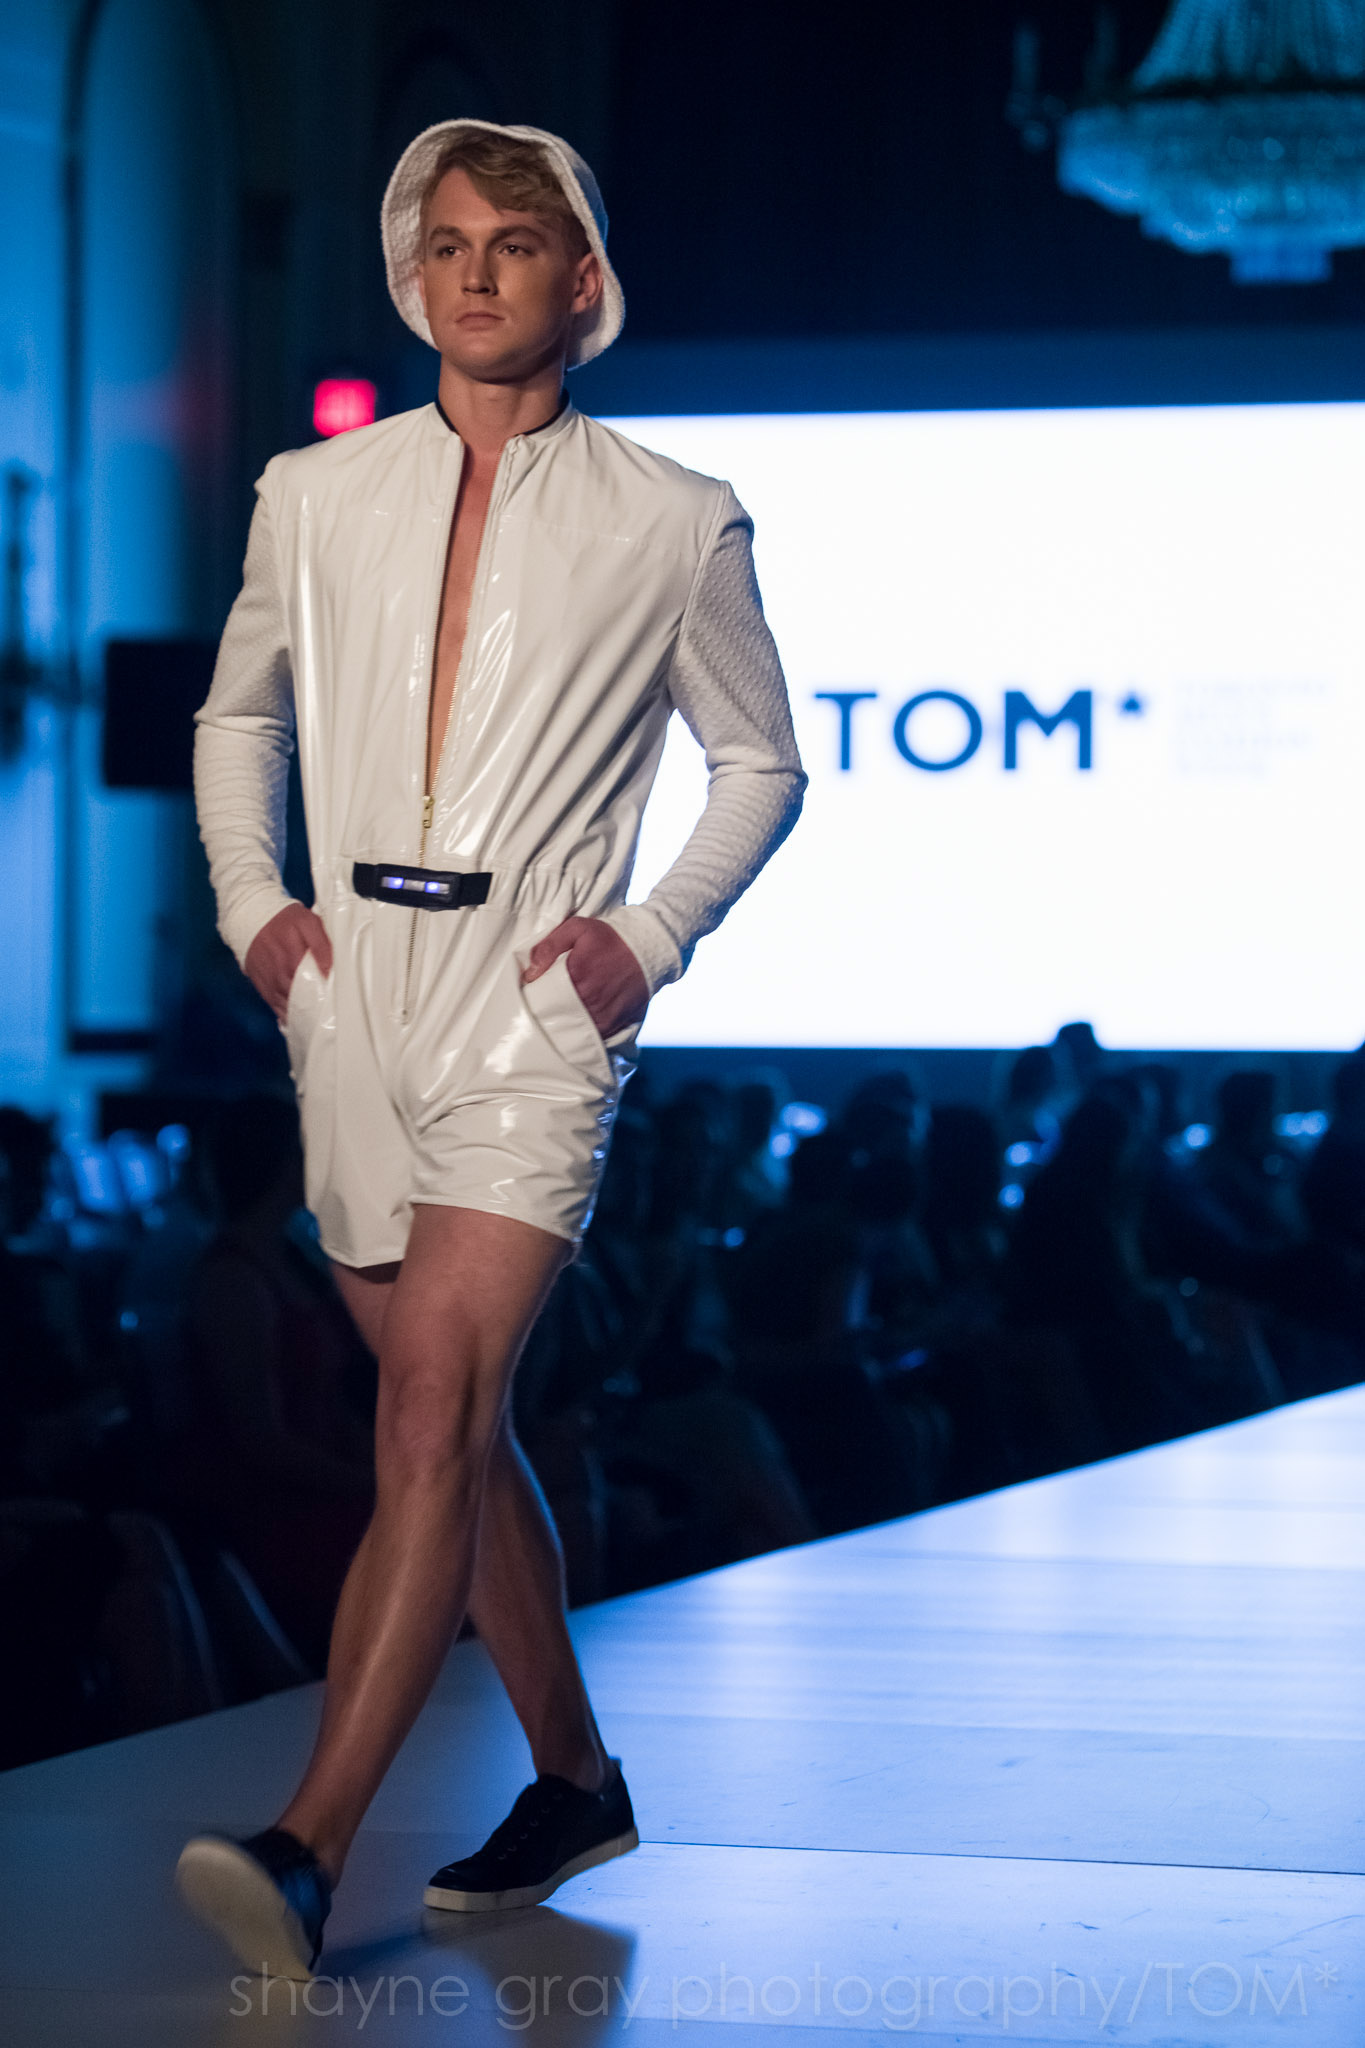 Shayne-Gray-Toronto-men's-fashion_week-TOM-wearables-wearable-technology-8737.jpg